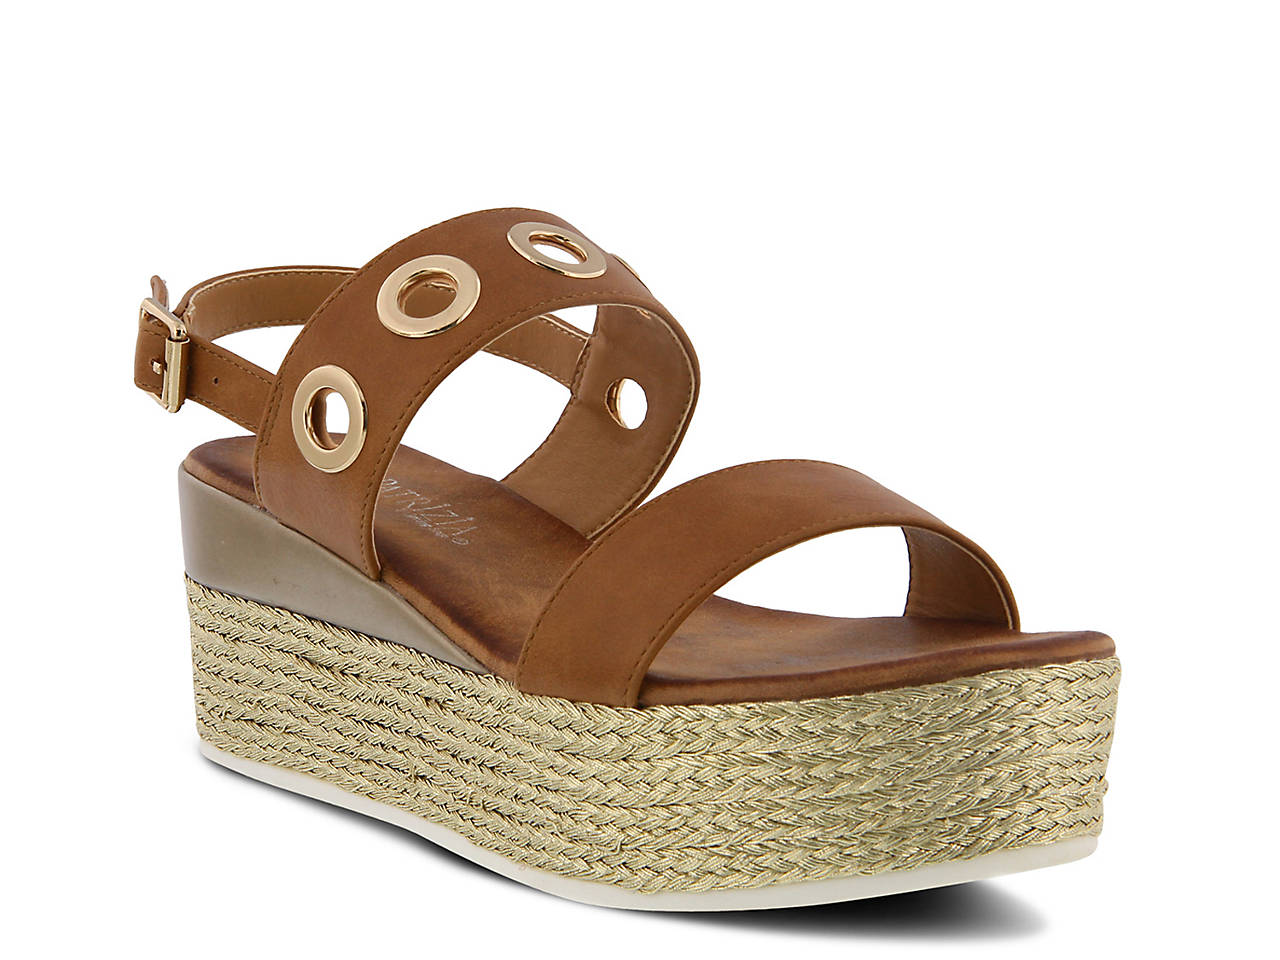 7cc17be216b6 Patrizia by Spring Step Nomara Espadrille Wedge Sandal Women s Shoes ...